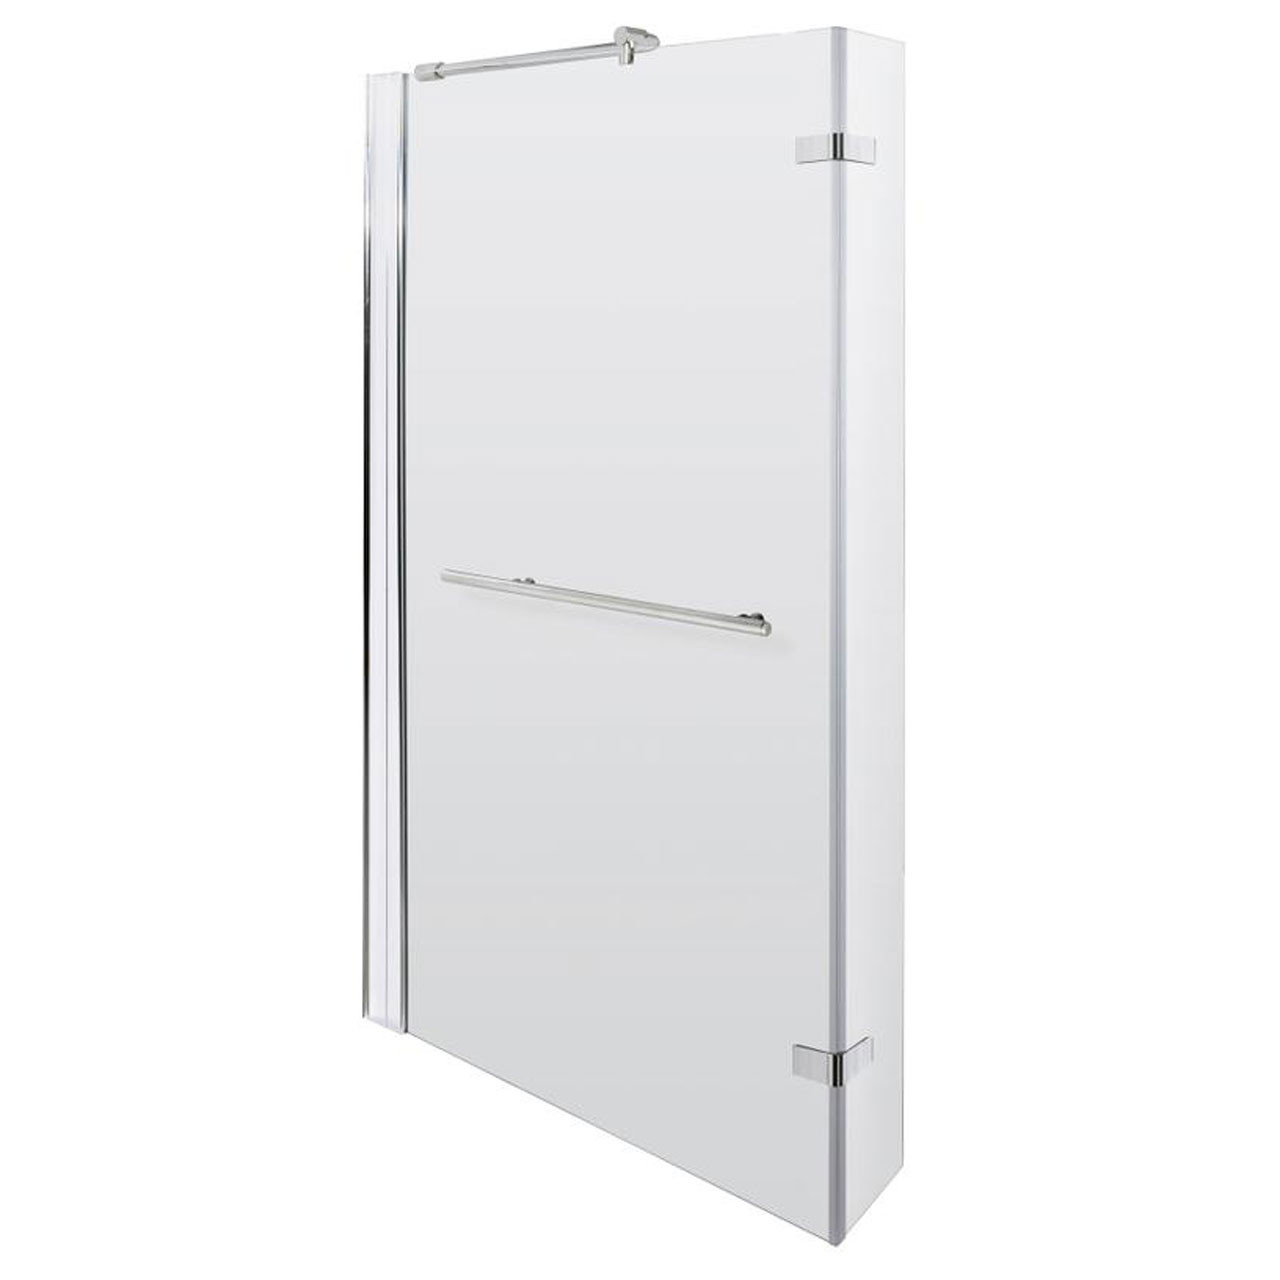 L Shape Shower Bath 1700 mm with Towel Rail Shower Screen and Panel Left Hand